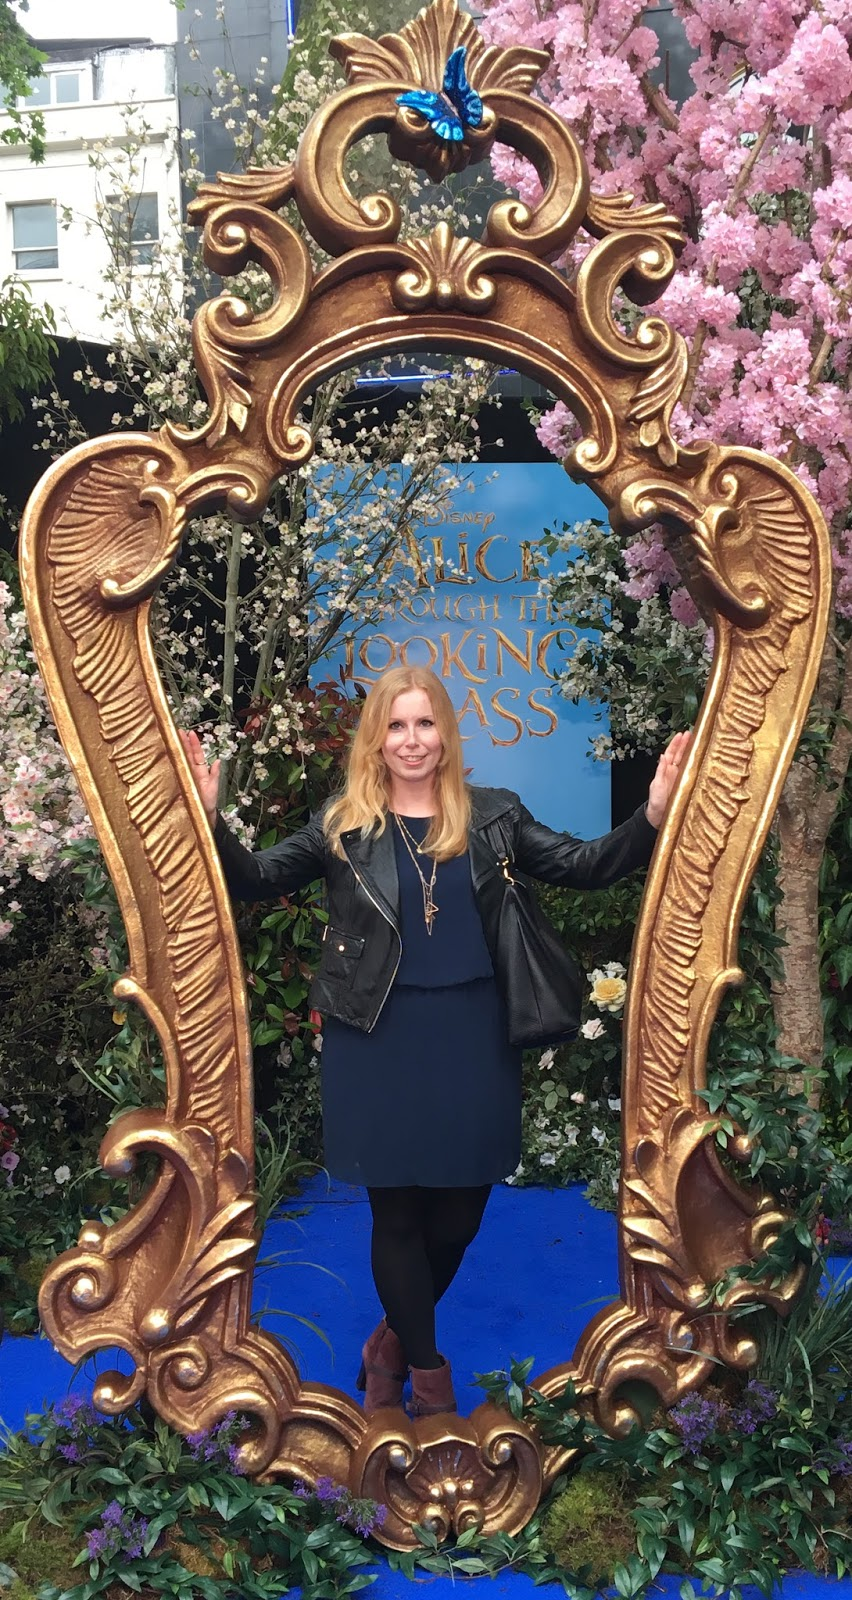 Alice Through the Looking glass european premiere in Leicester Square